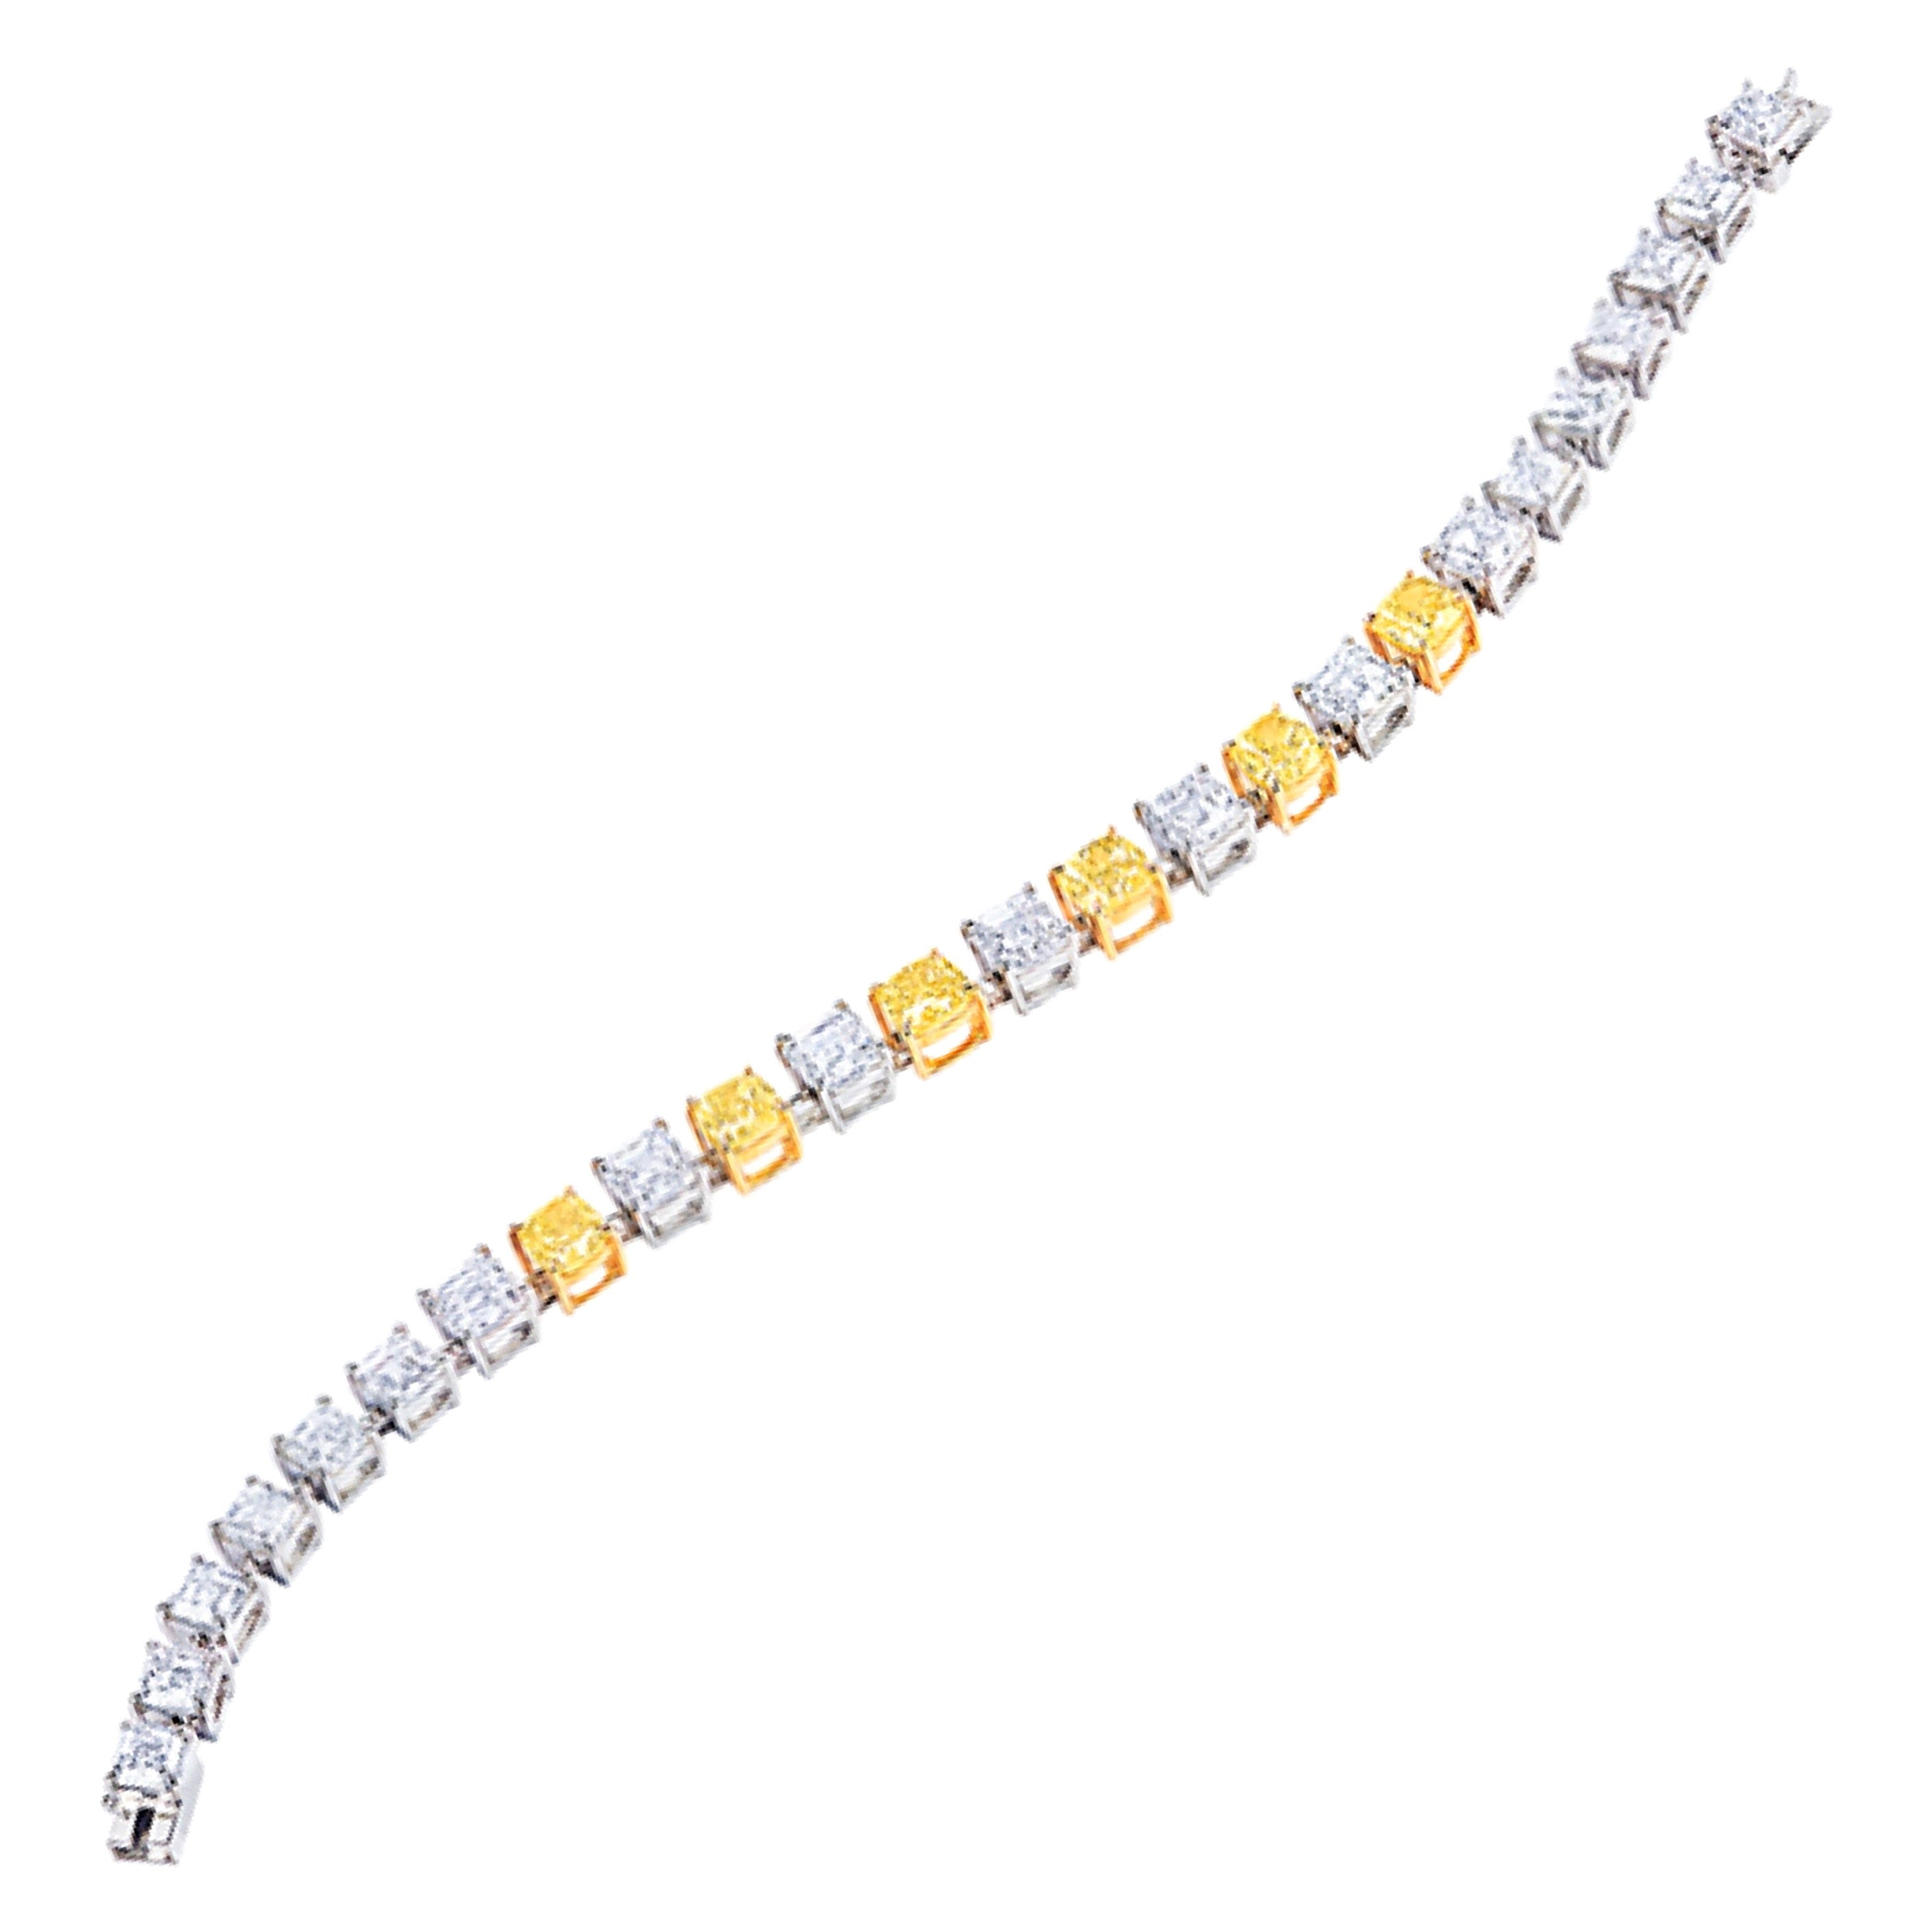 Emilio Jewelry GIA Certified Fancy Intense Diamond Bracelet